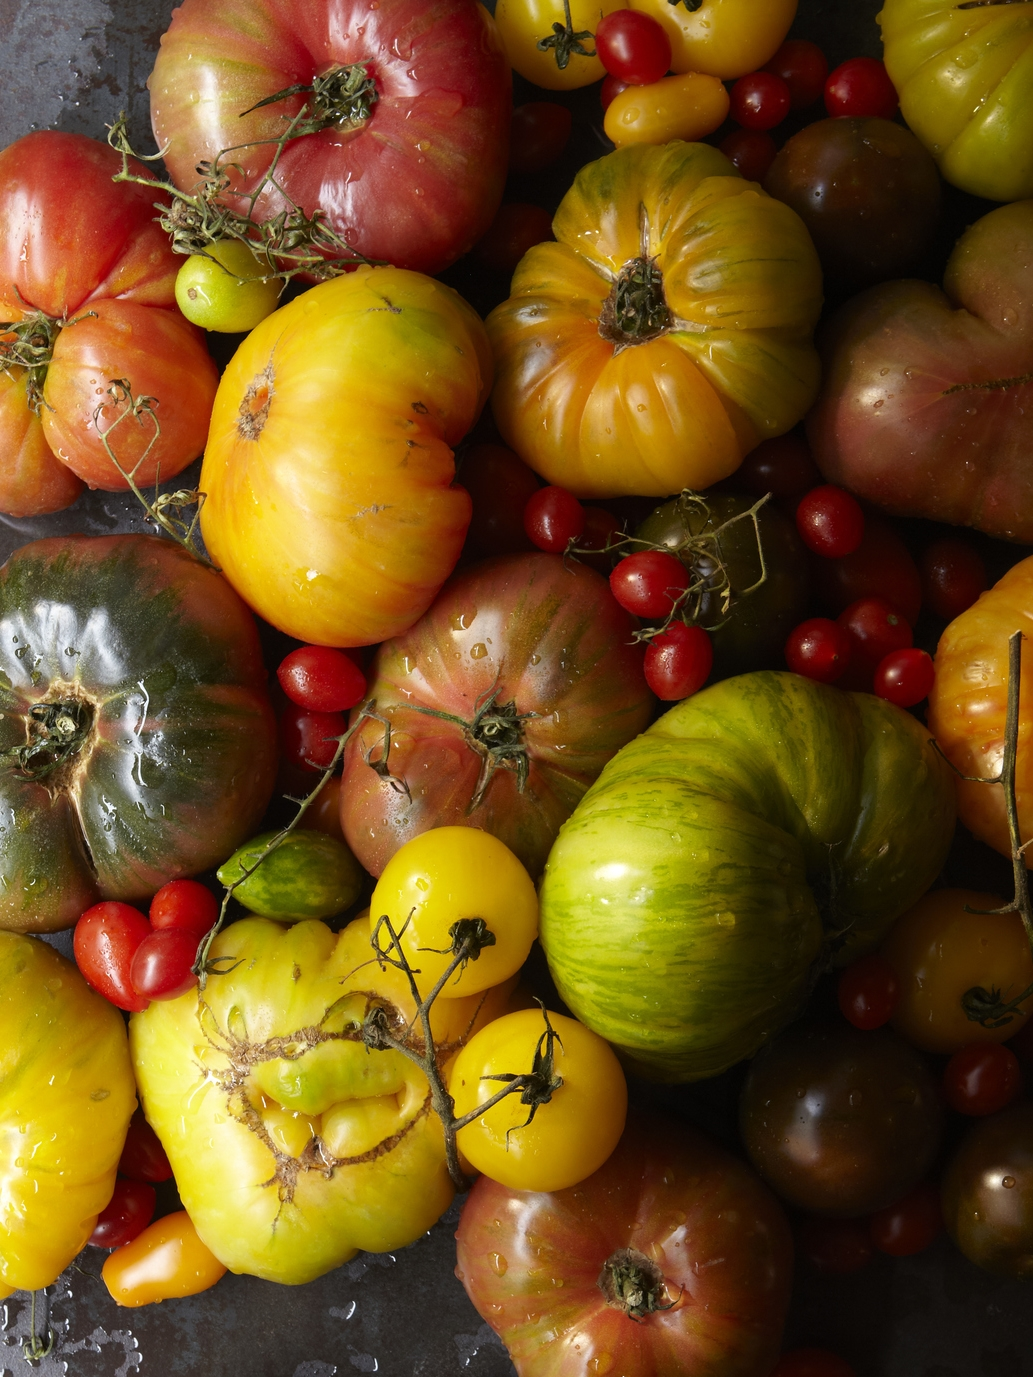 Heirloom tomatoes at Via Carota, where cherished downtown chefs Jody Williams and Rita Sodi cook deeply appealing Italian food, honoring their local markets and farms from one season to the next.